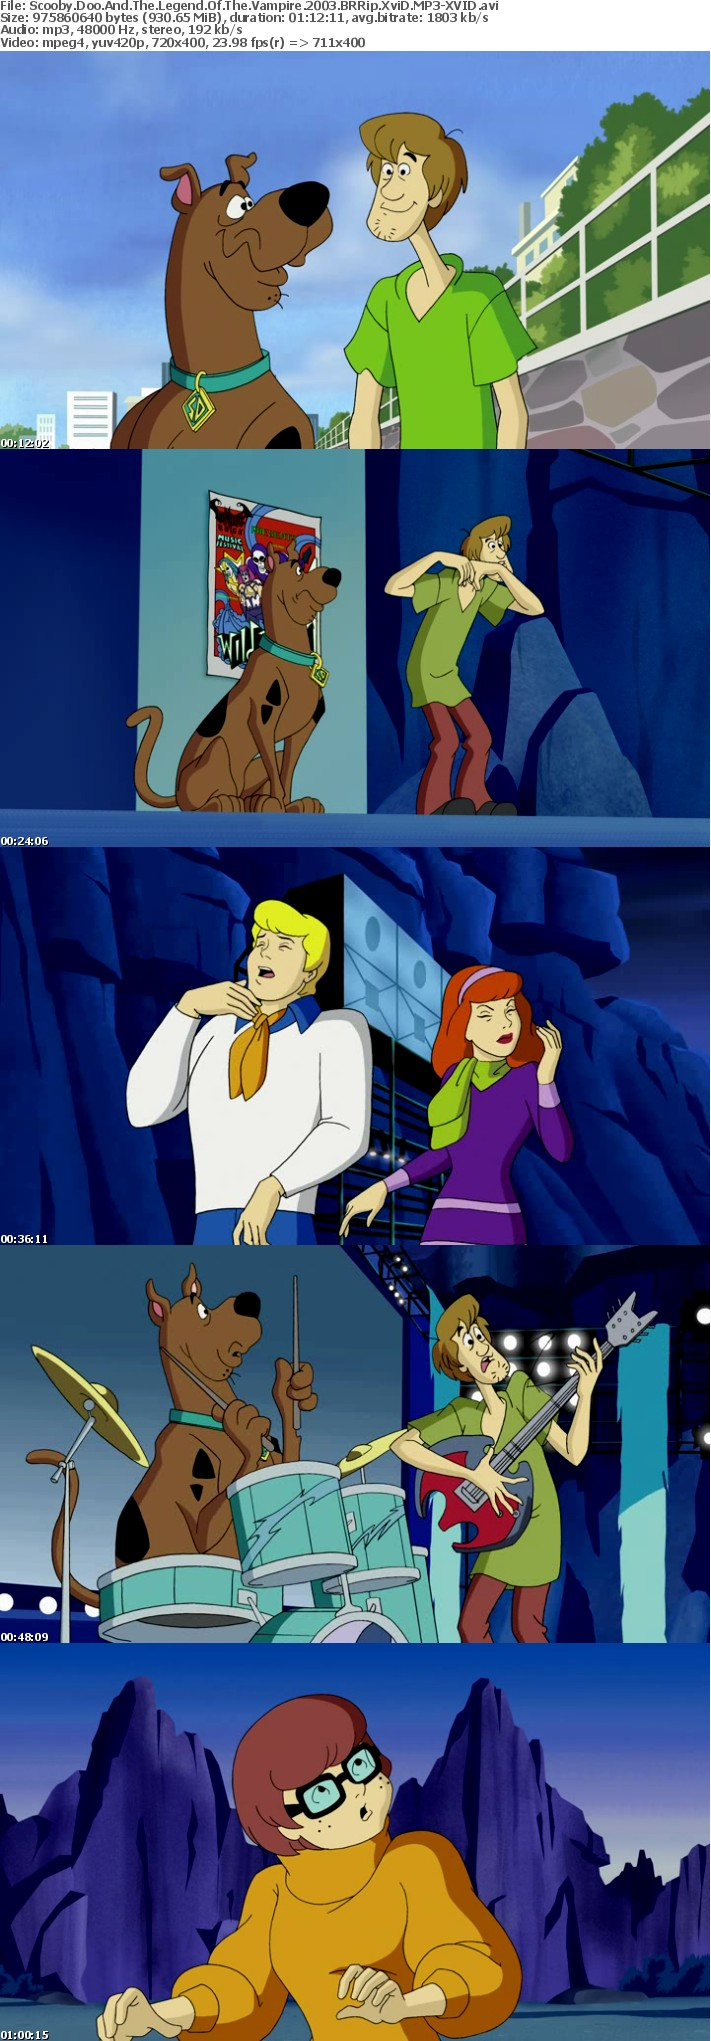 Scooby Doo And The Legend Of The Vampire 2003 BRRip XviD MP3-XVID